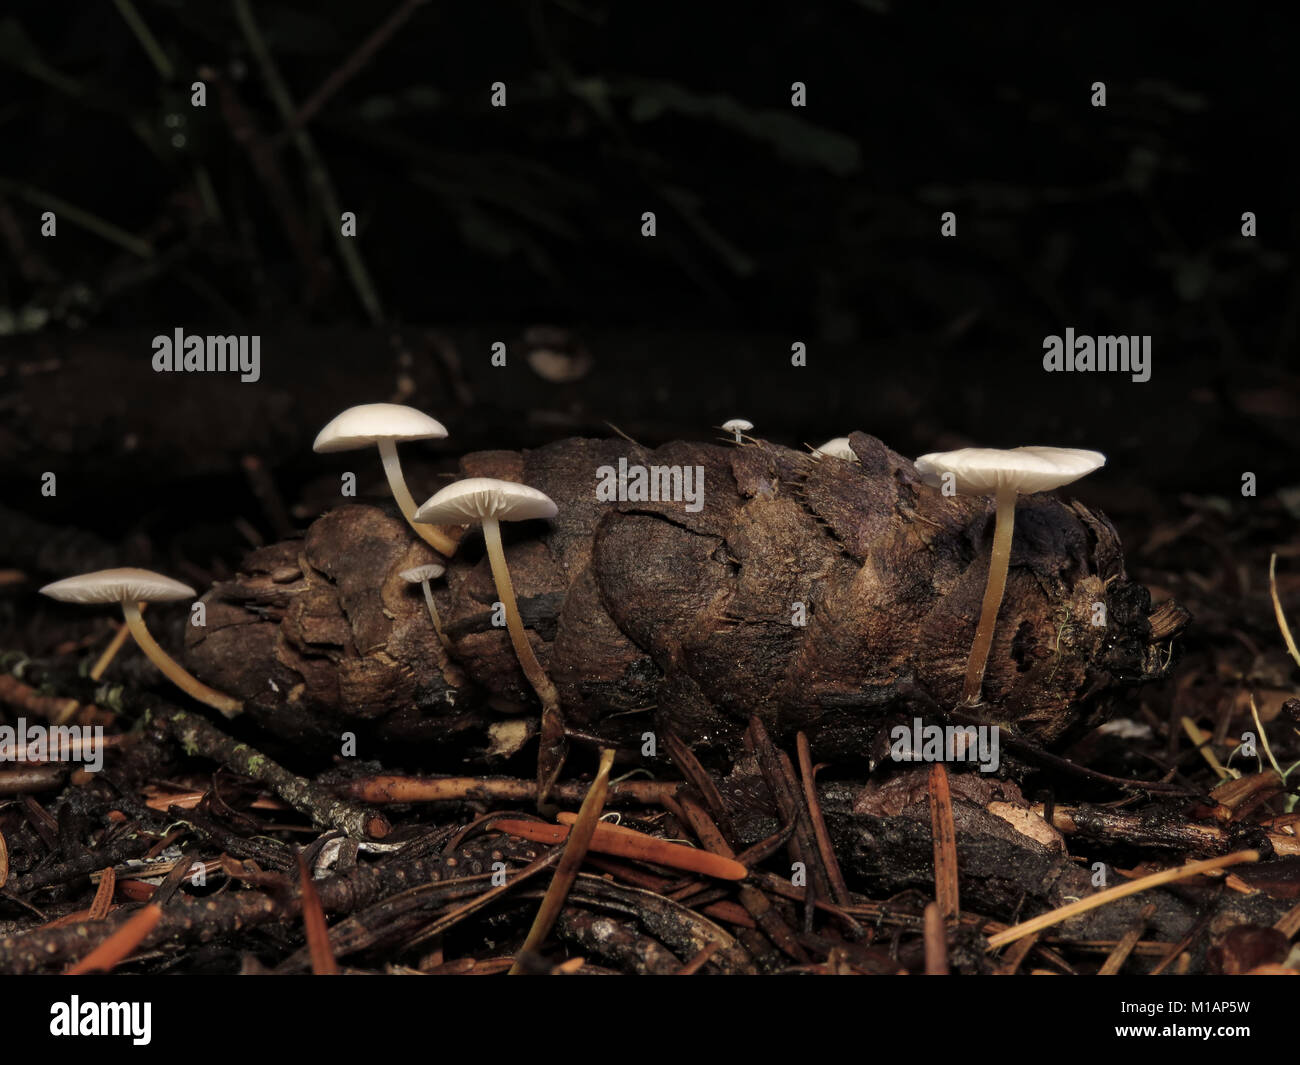 Tiny mushrooms growing out of a conifer cone in a Pacific Northwest forest - Stock Image